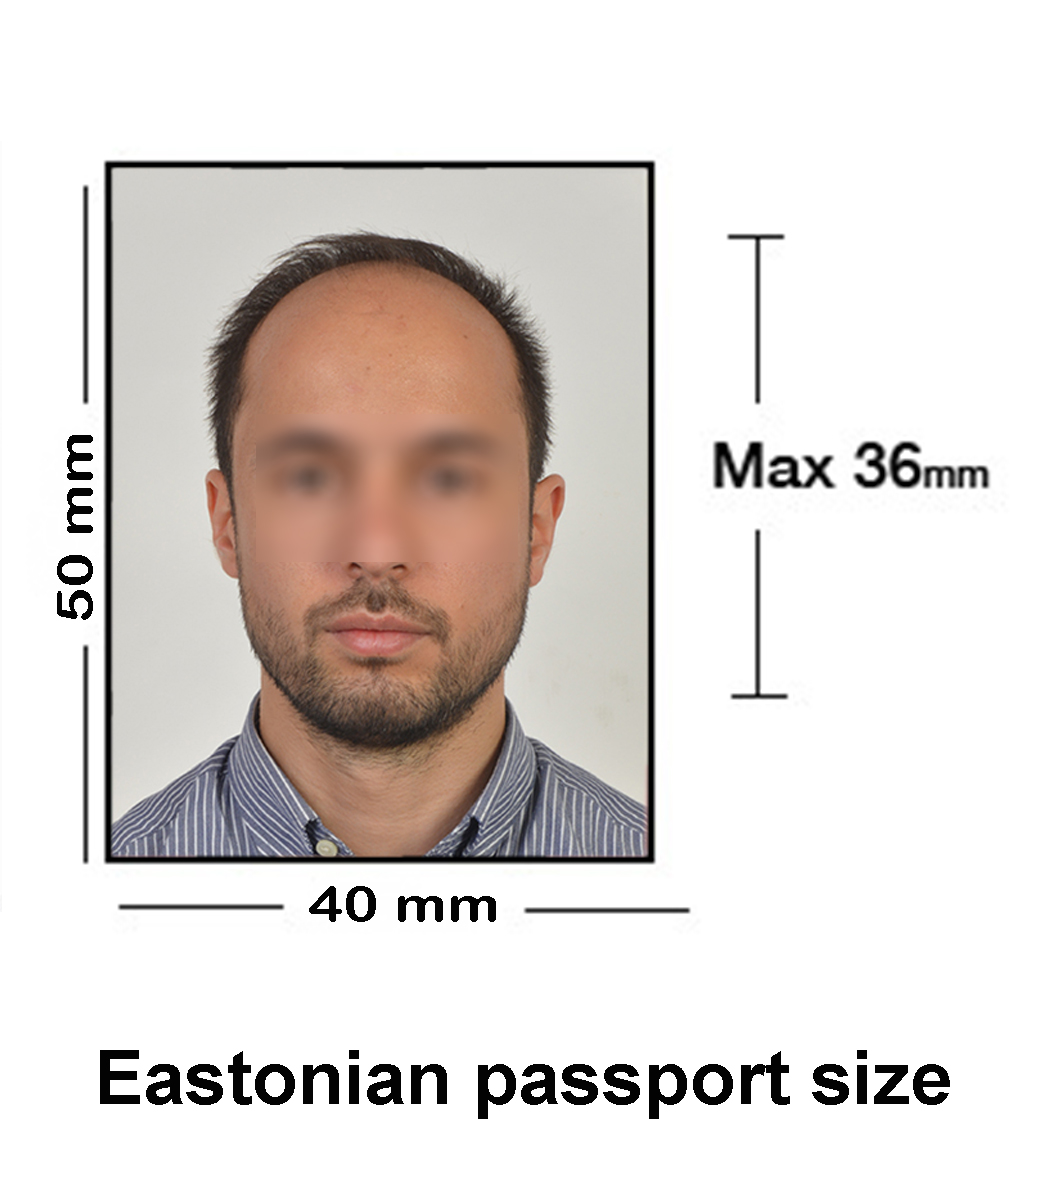 Best Passport Photo Store in New York City - Doi Camera Irish passport size photo dimensions